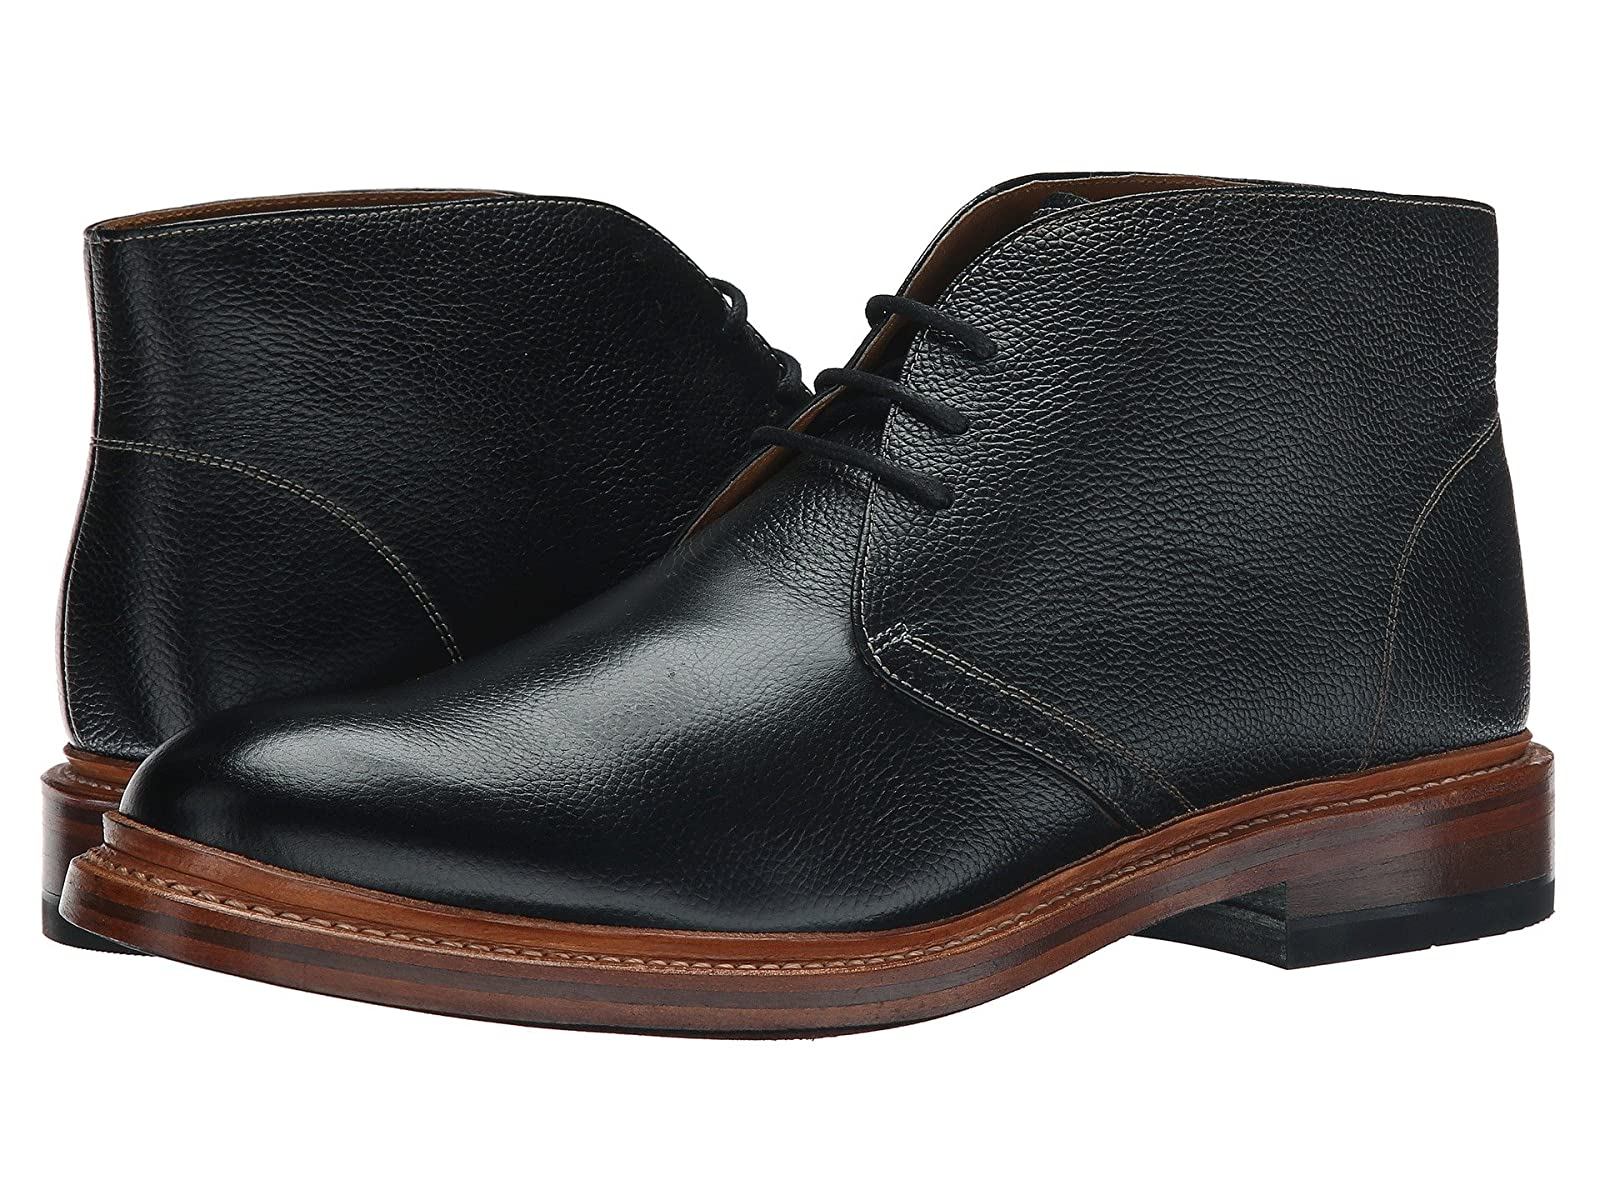 Stacy Adams Madison II - 65Cheap and distinctive eye-catching shoes